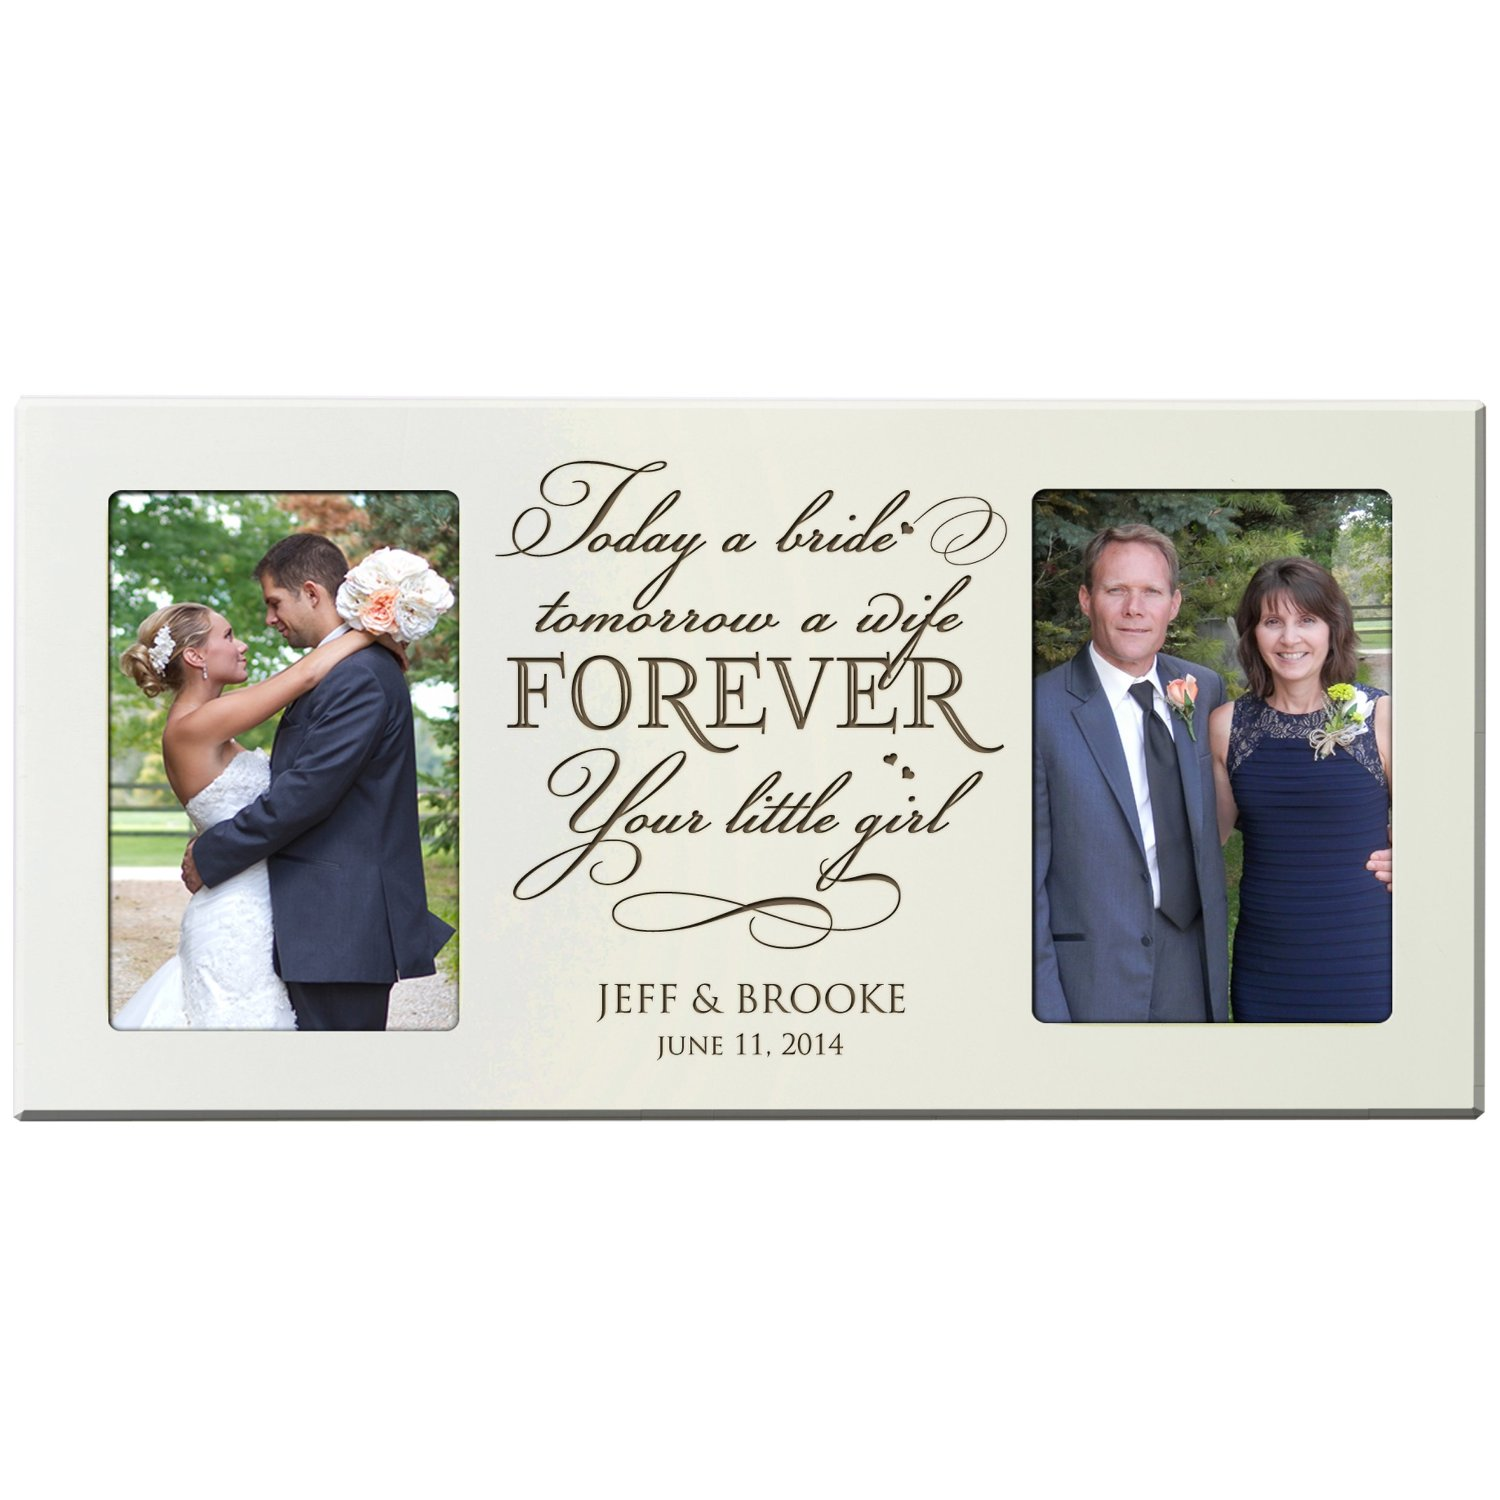 Inexpensive Wedding Gifts For Bride And Groom: Cheap Wedding Day Gifts For Groom From Bride, Find Wedding